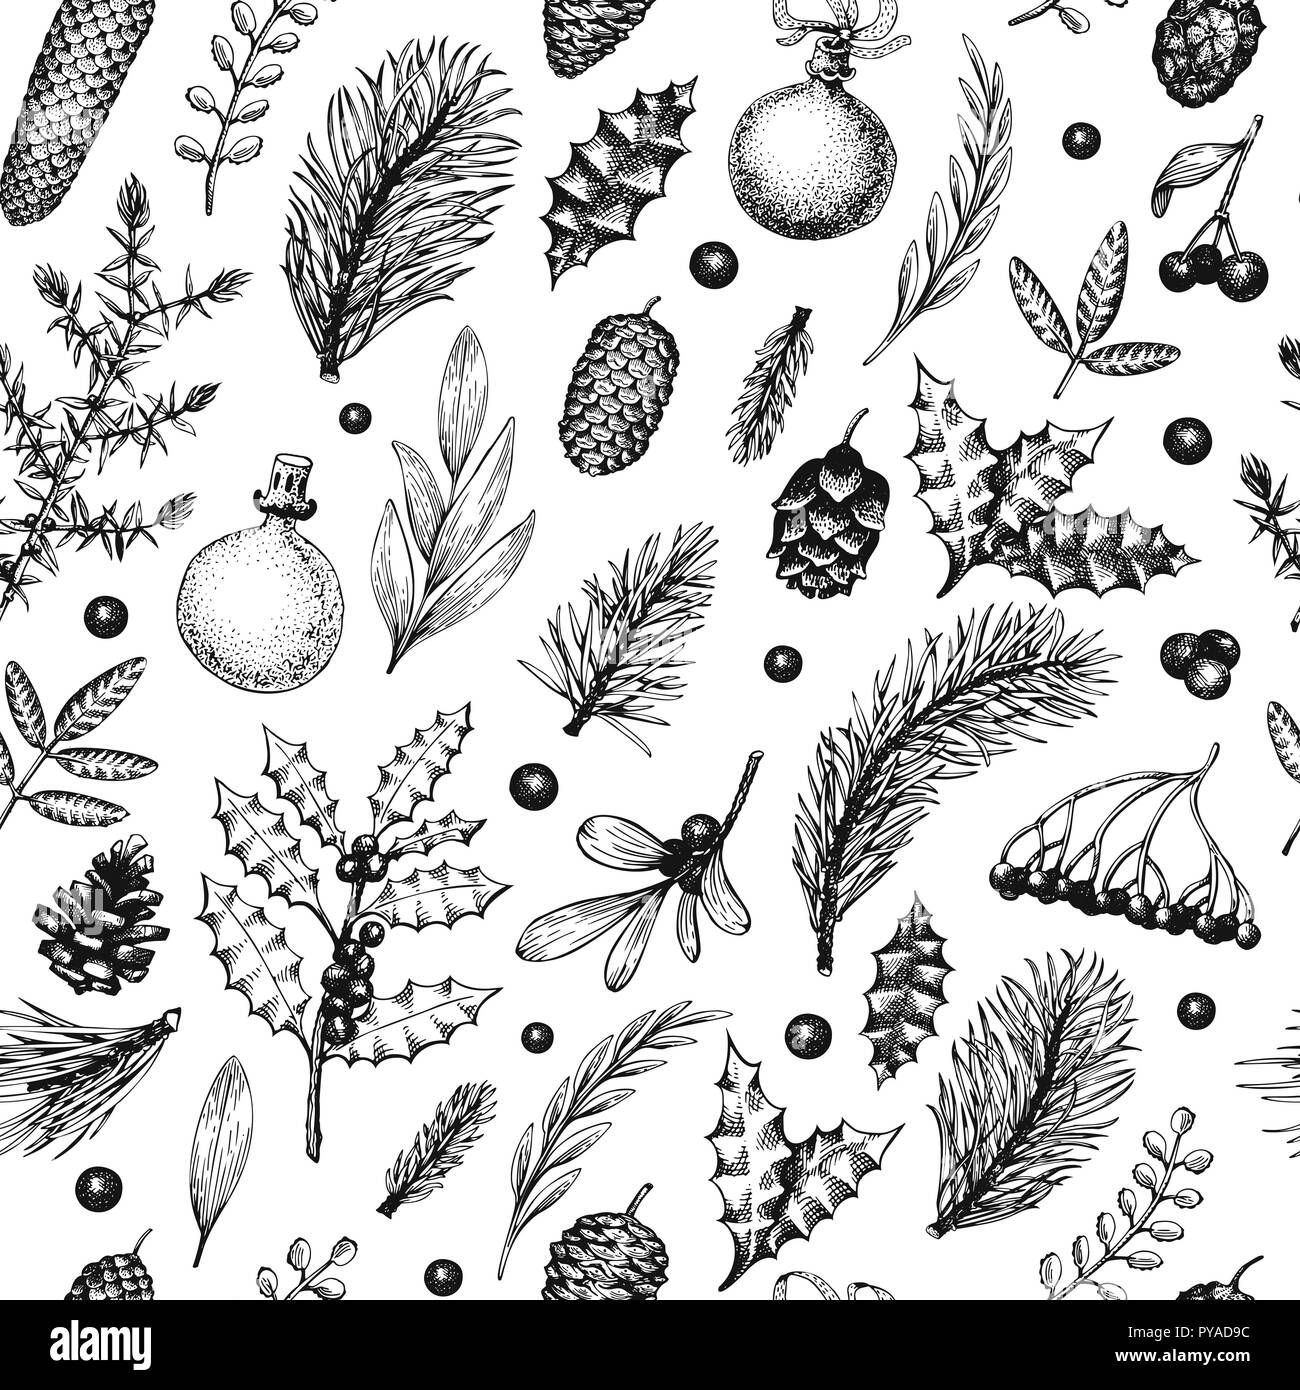 Christmas seamless pattern in retro style. Vector hand drawn illustrations. Background with coniferous, pine branches, berries, holly, mistletoe. Wint - Stock Vector